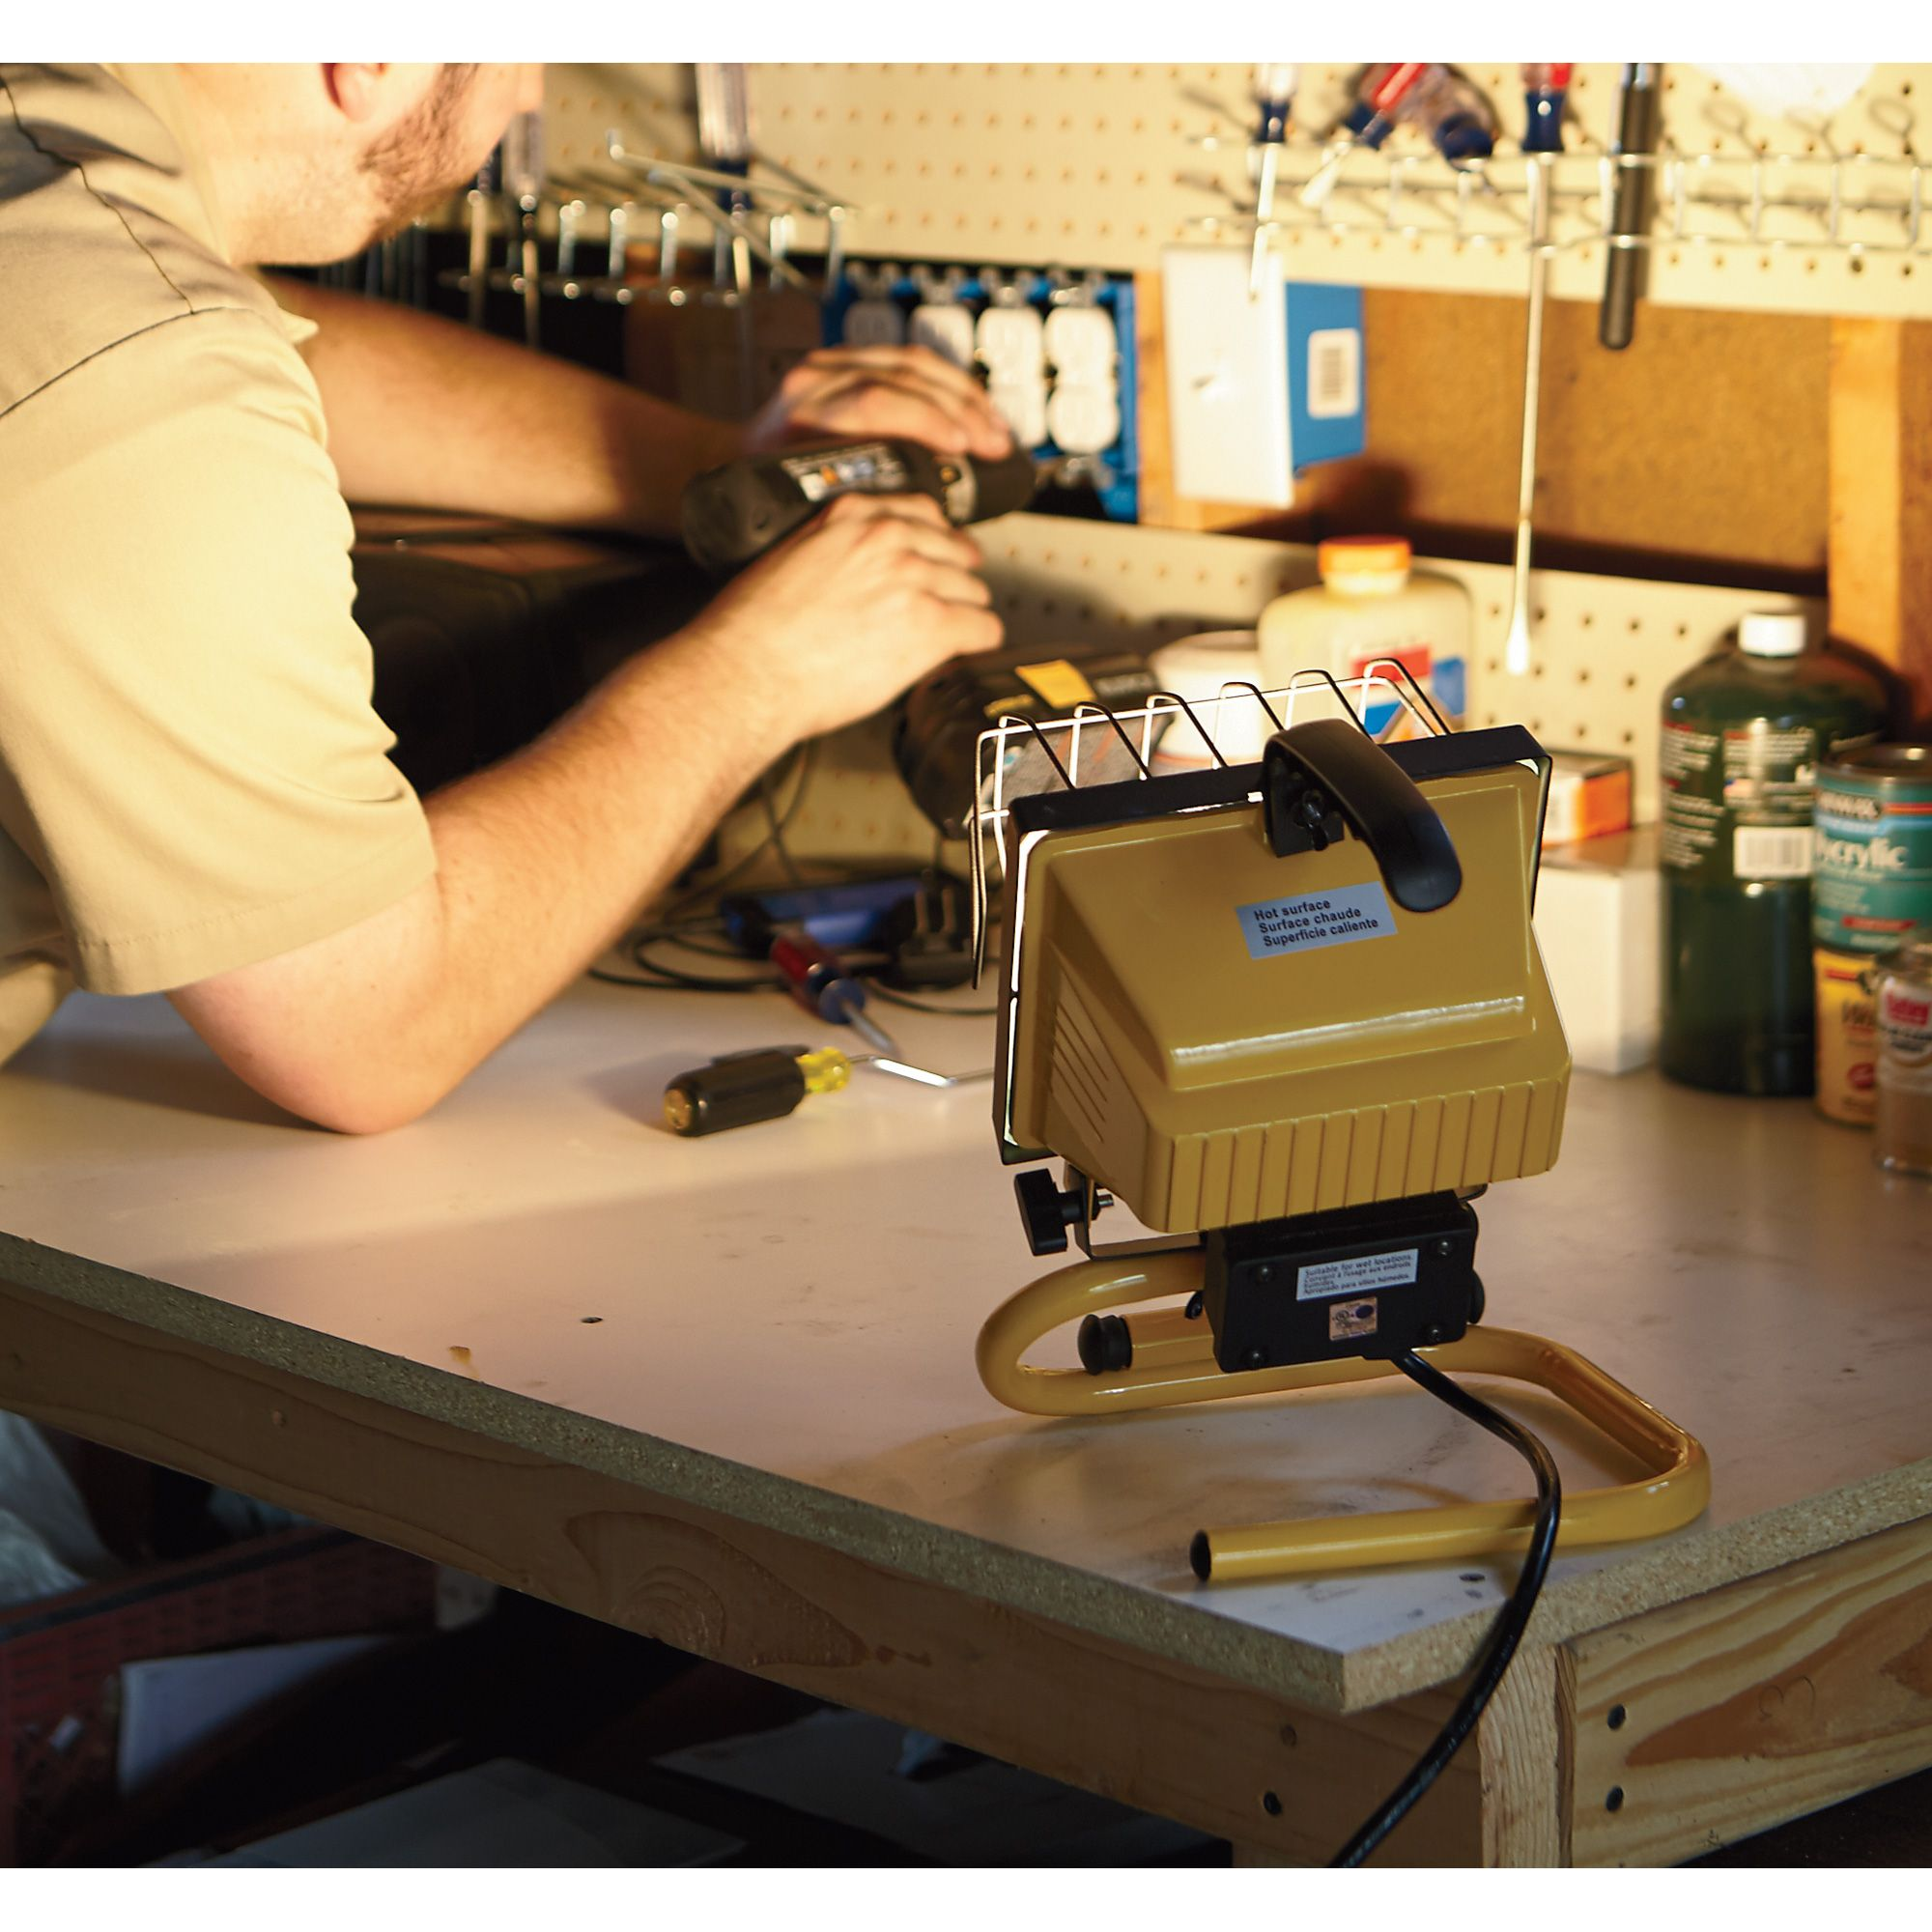 Light Up Your Garage Creatively: Light Up Your Work Space With The Ironton Halogen